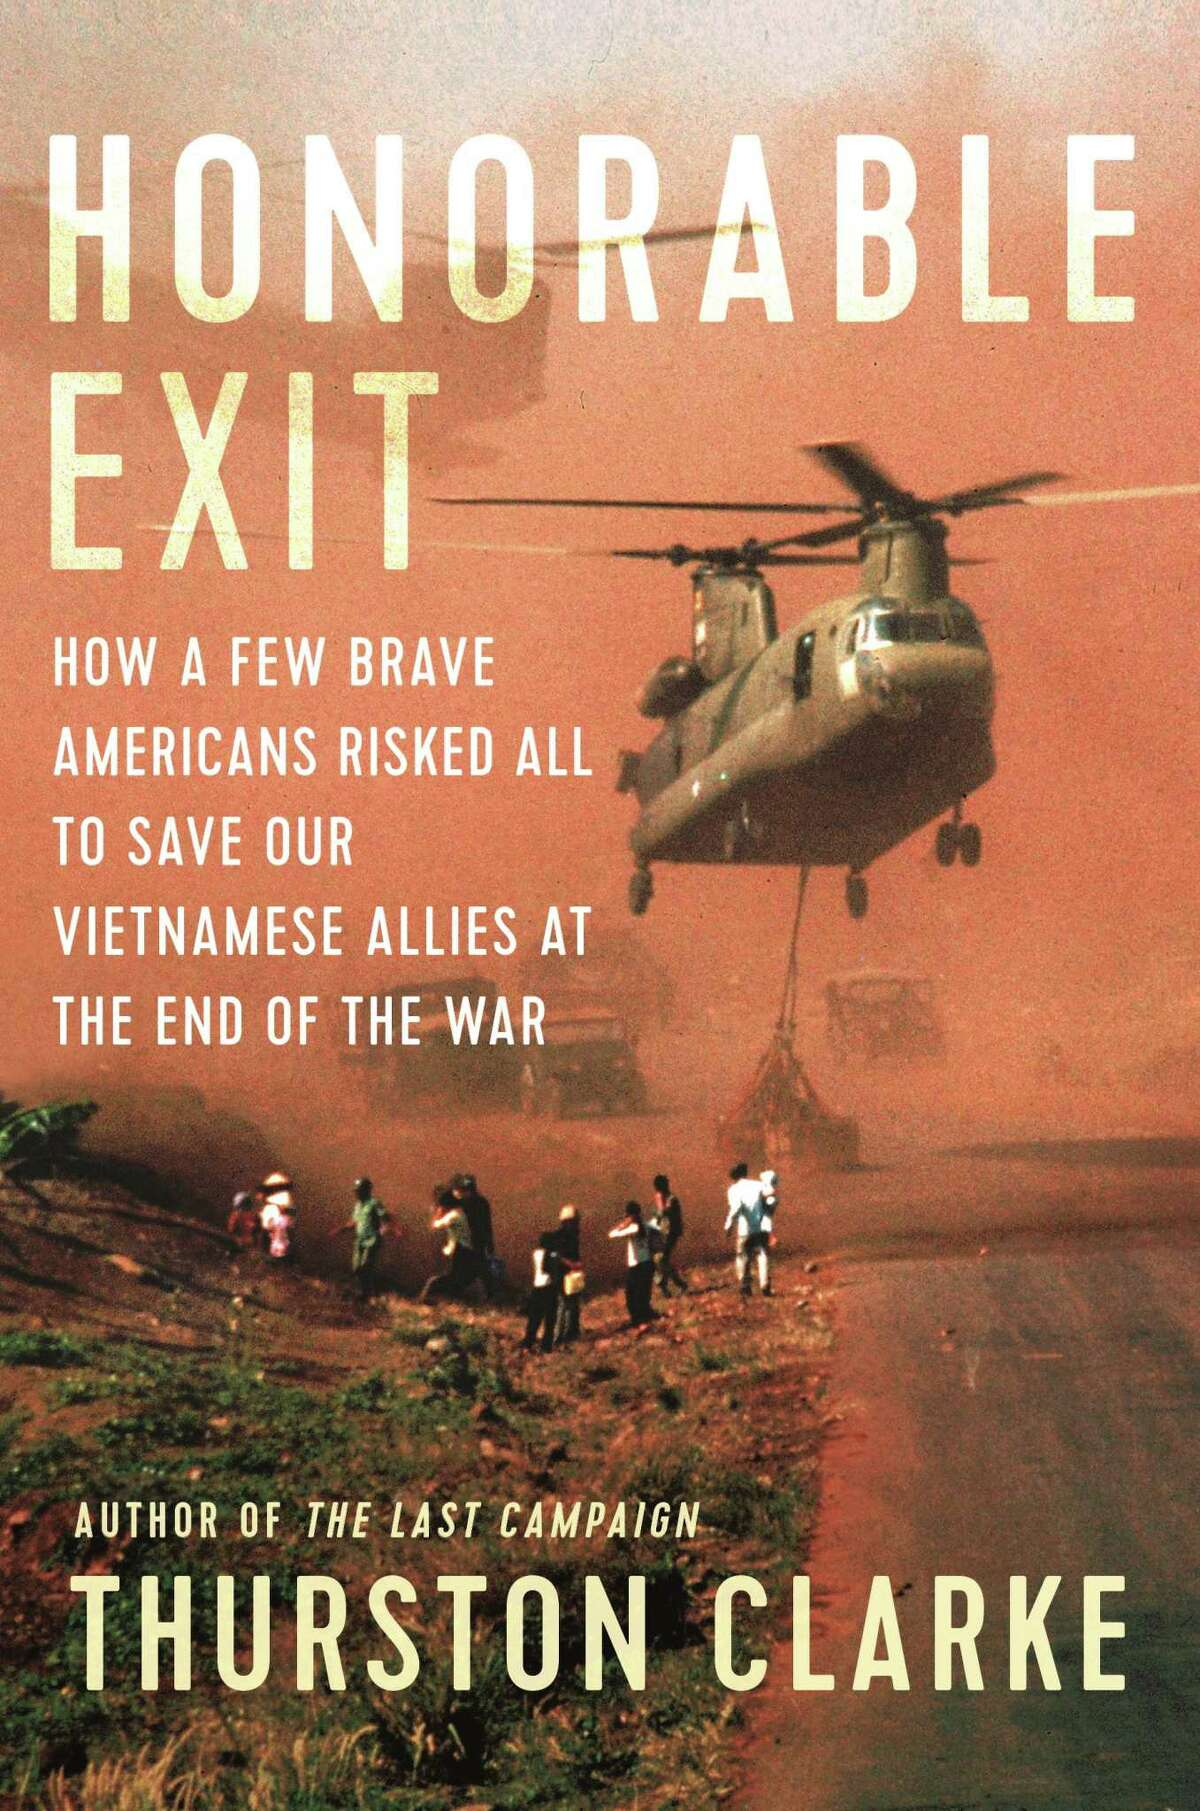 """""""Honorable Exit: How a Few Brave Americans Risked All to Save Our Vietnamese Allies at the End of the War"""" by Thurston Clarke (Penguin Random House)"""